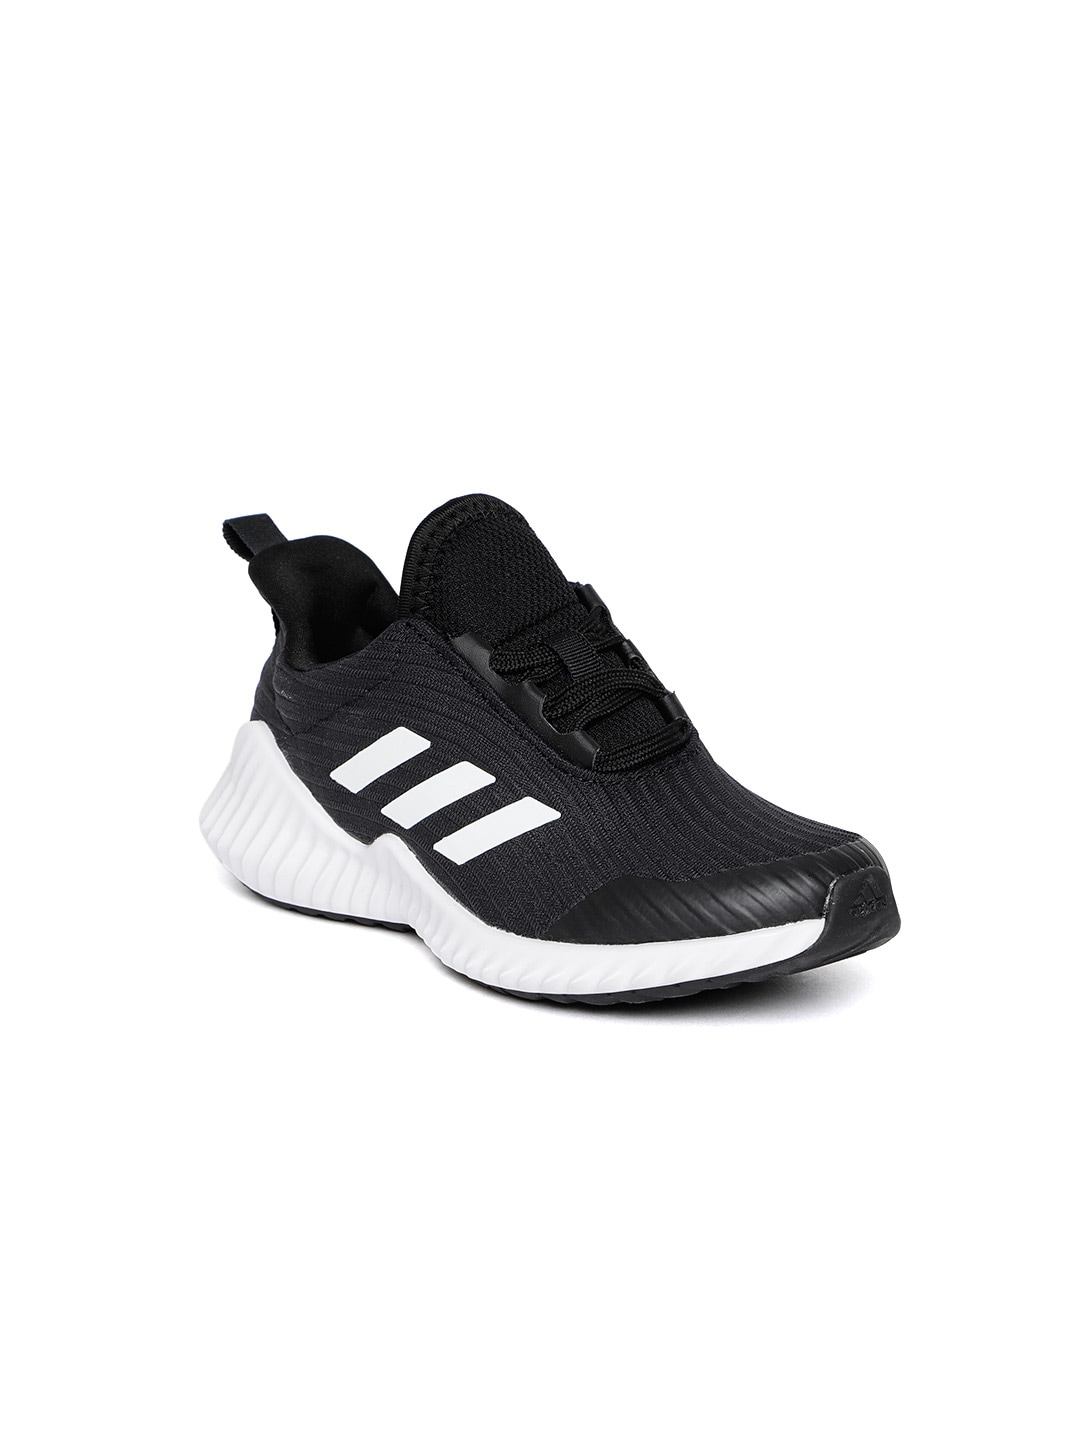 pick up 49ce5 ebe62 ADIDAS. Rs. 3999. Kids Fortarun Running Shoes